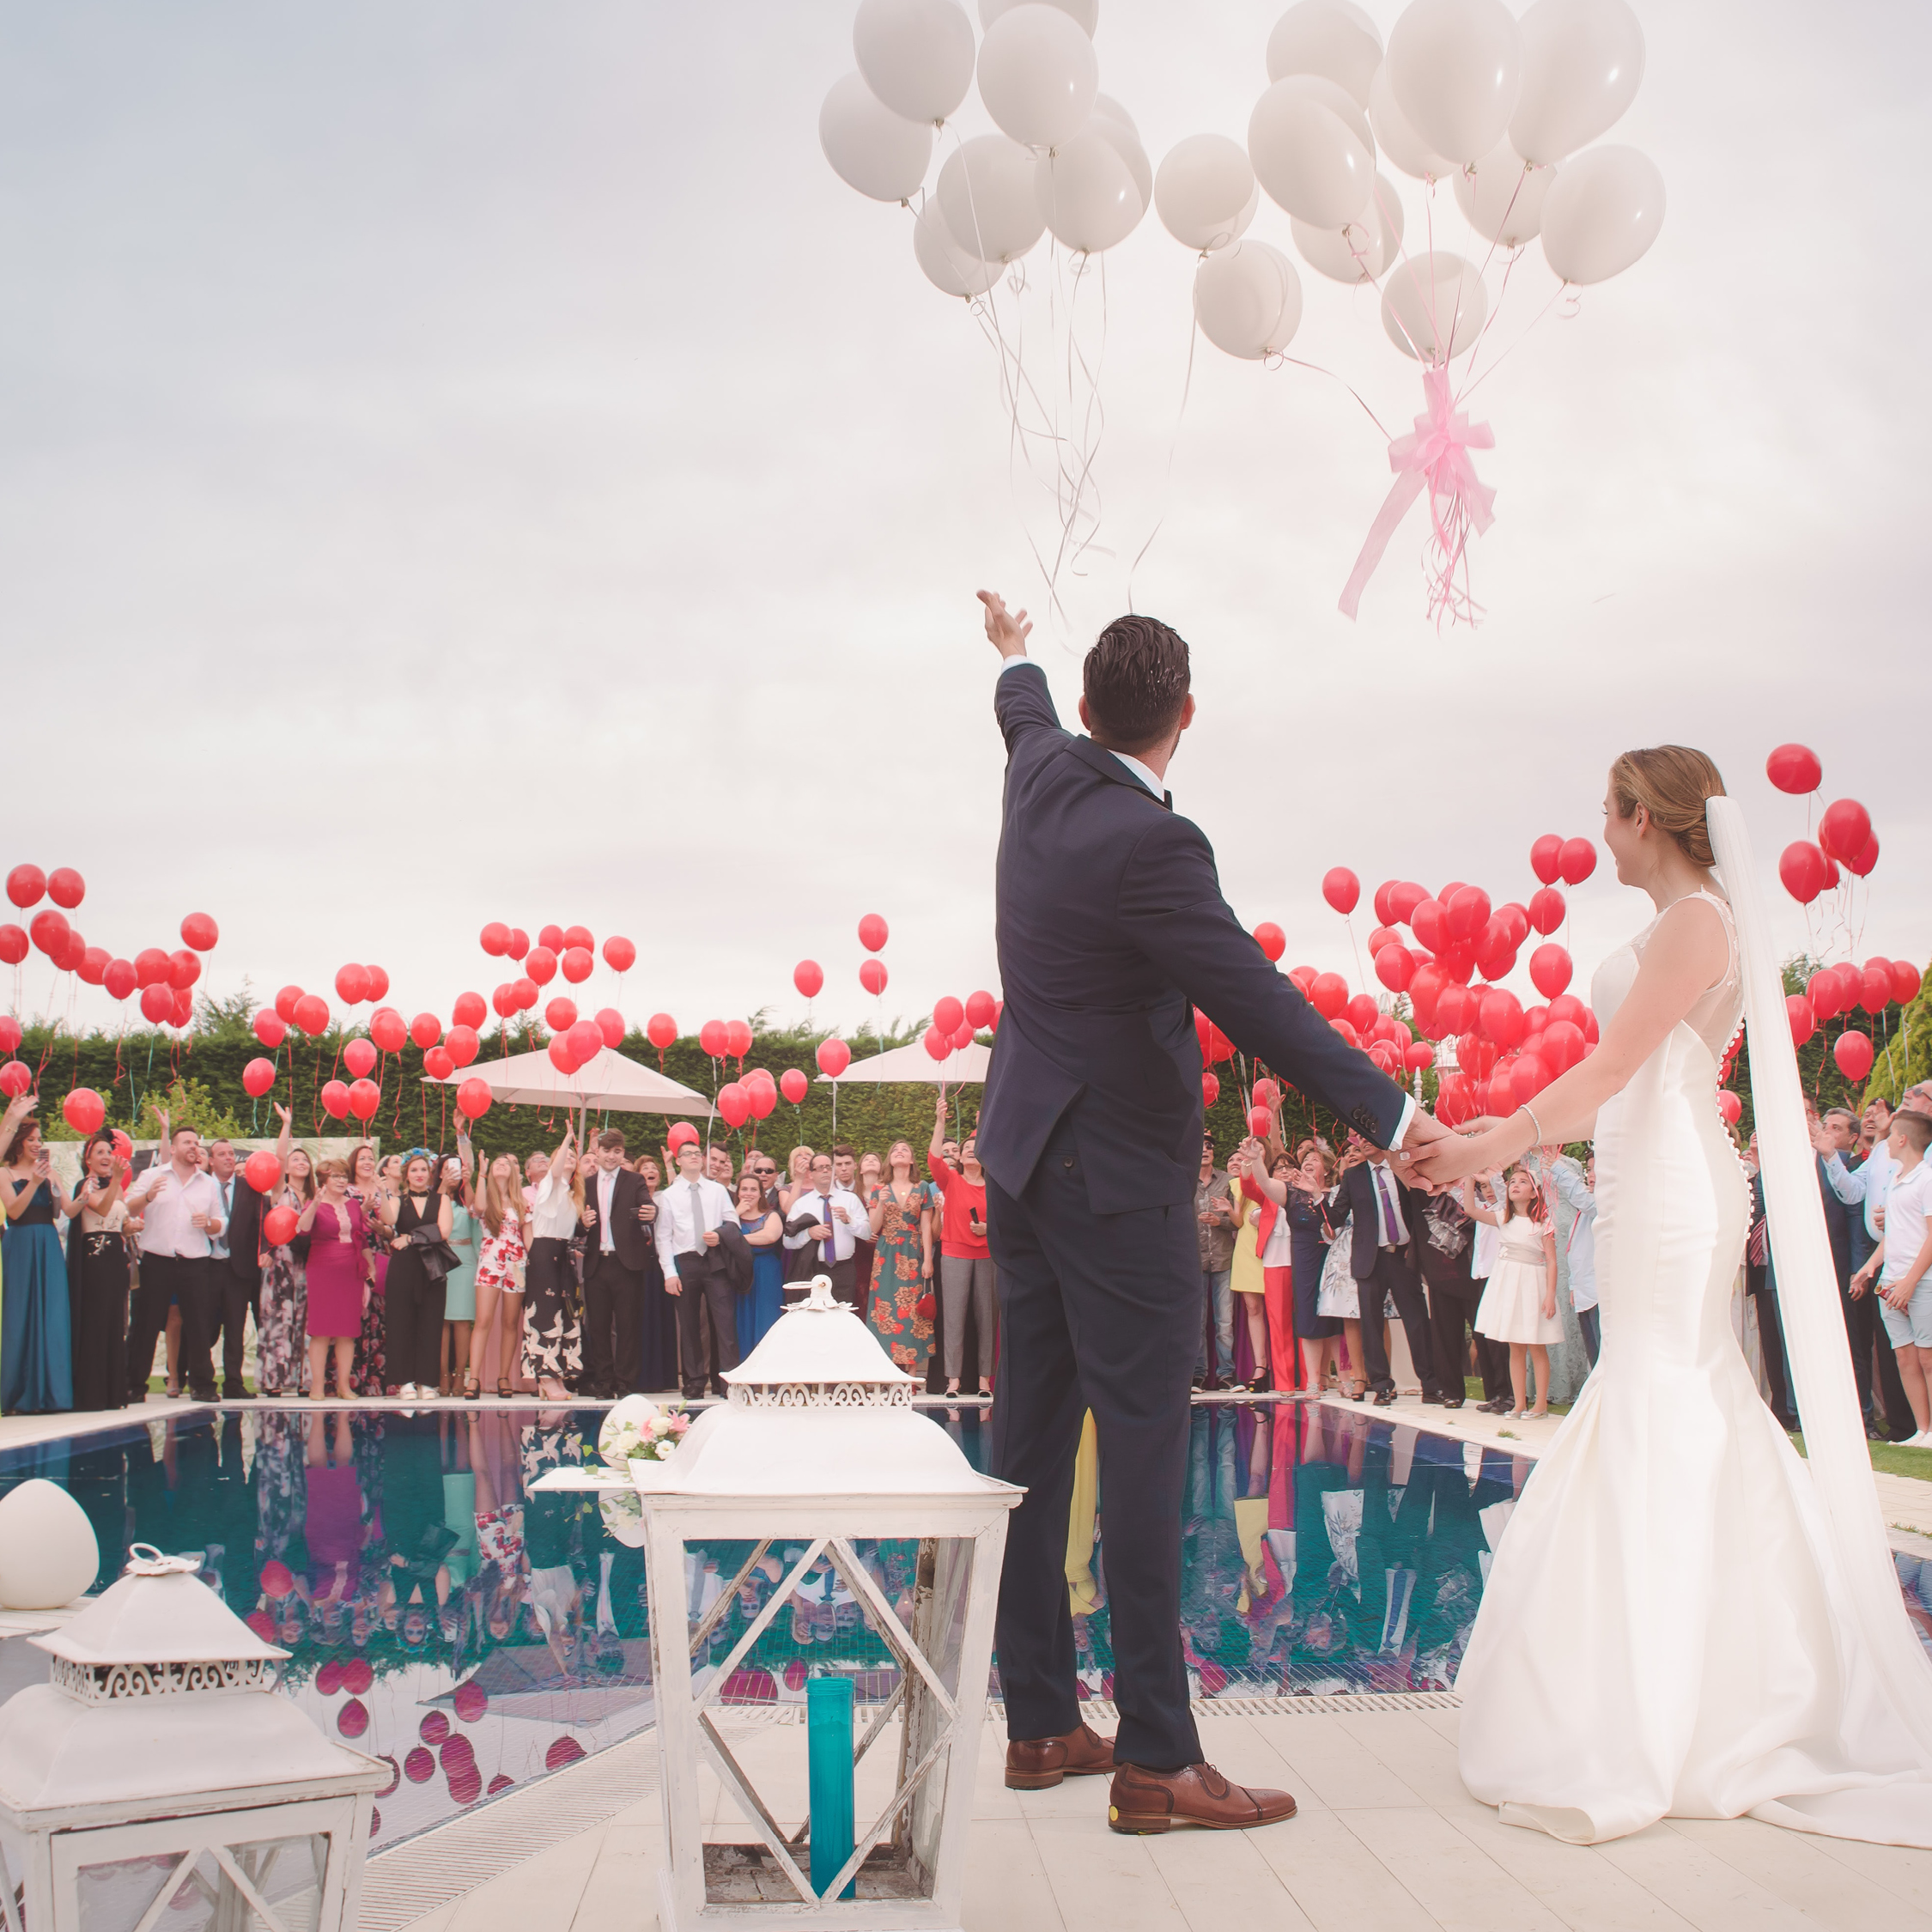 wedding balloon release, wedding decorations with balloons